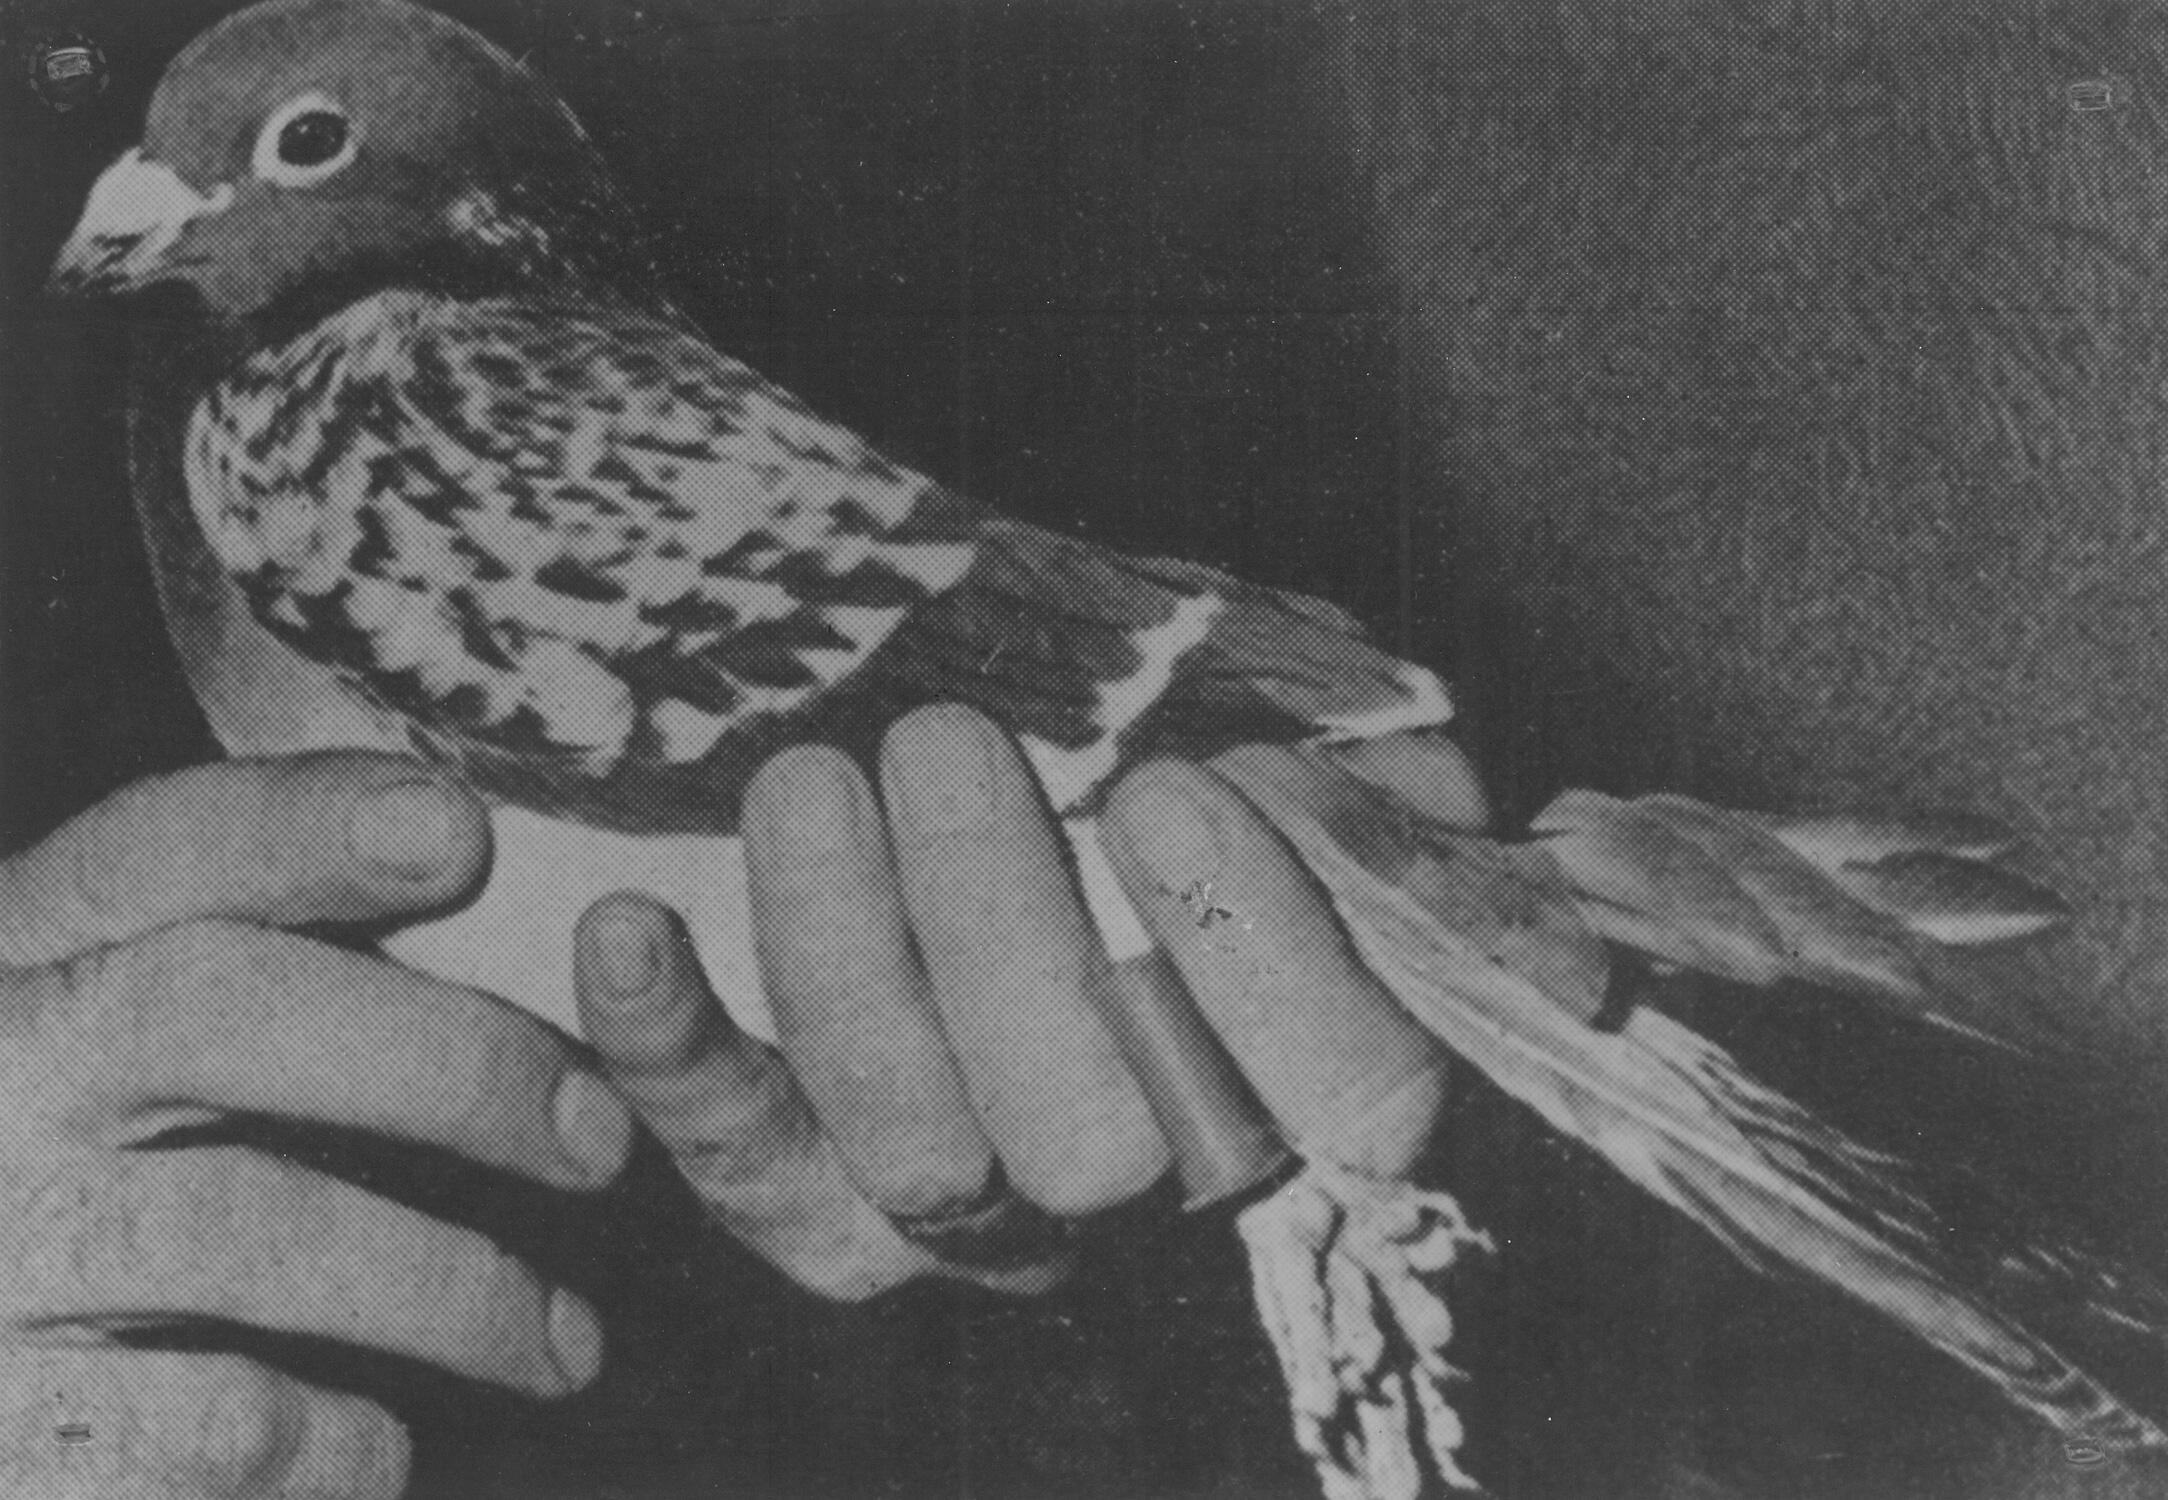 The pigeon pictured here, named Beachcomer, was given the Dickin medal for capturing the first evidence showing the Allies' failure in taking the German-occupied Dieppe port in September 1942. AR/BNPS